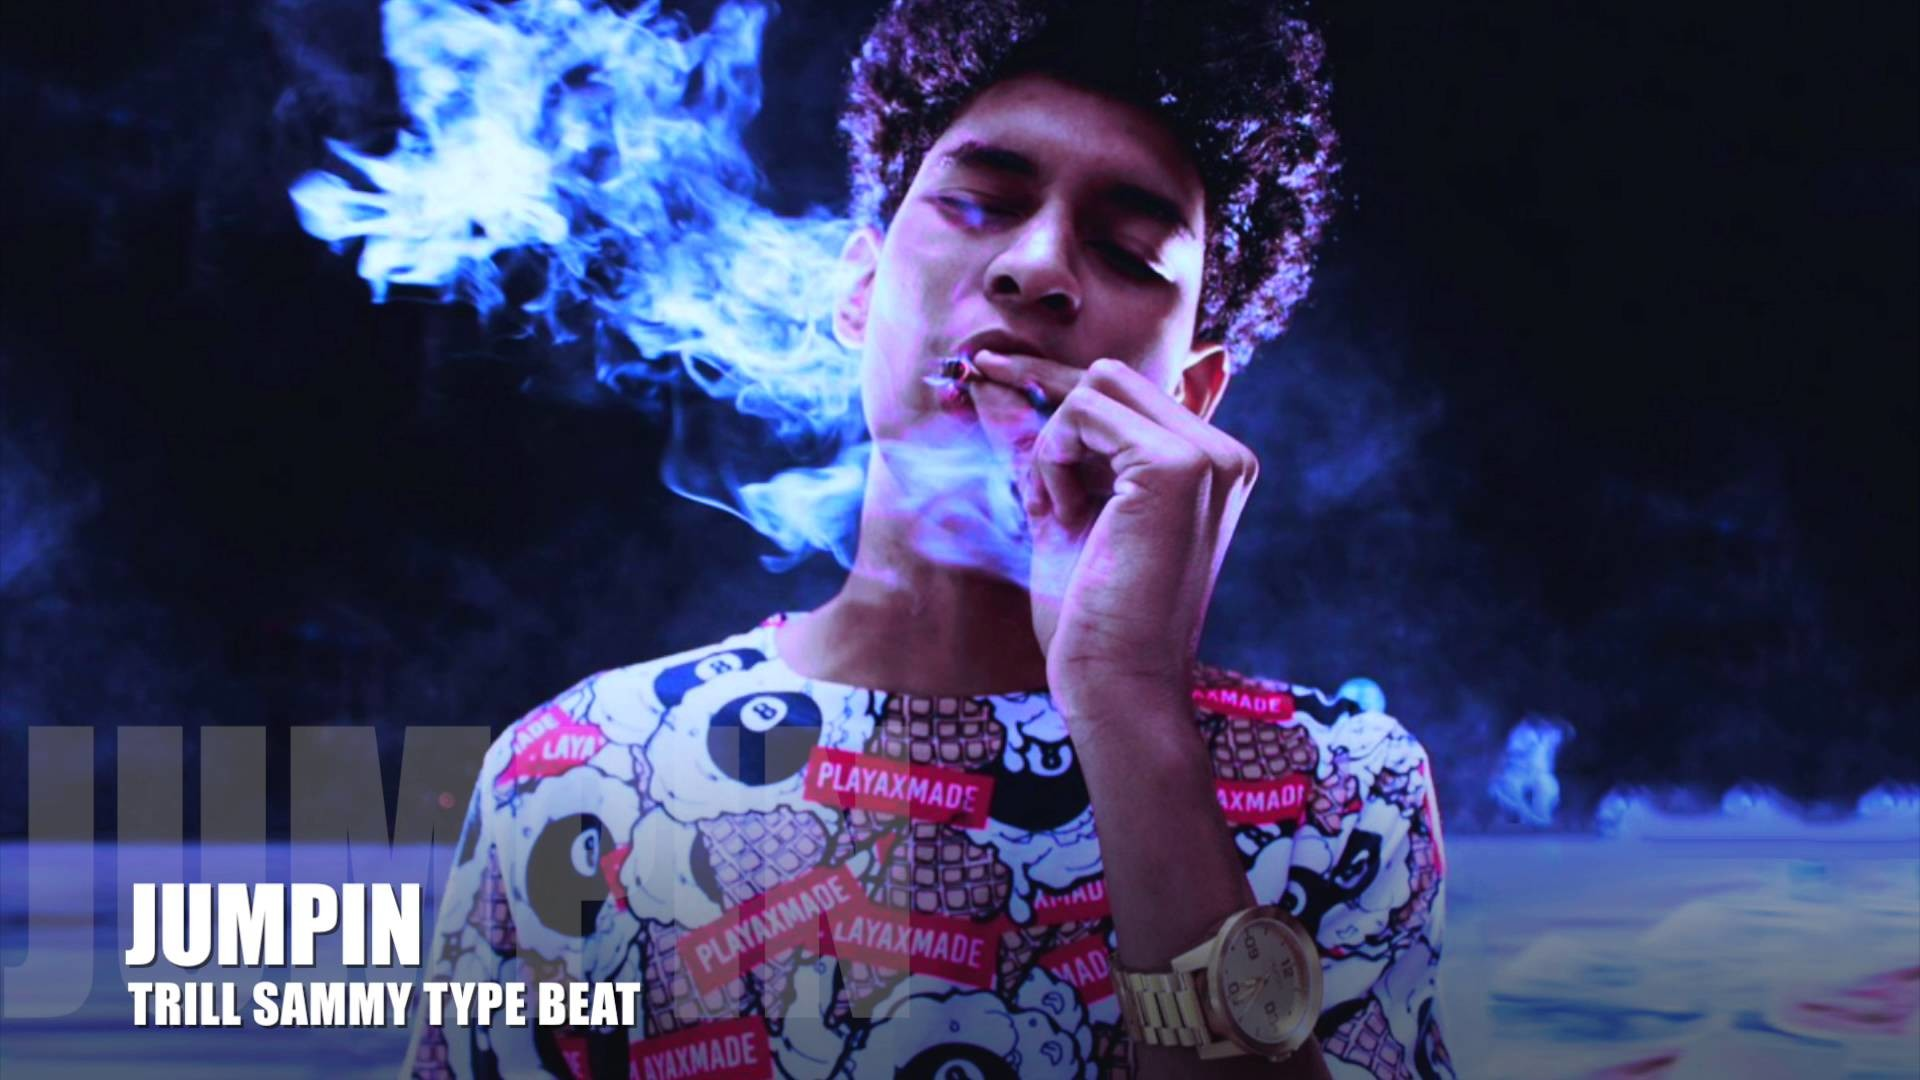 95 best images about Trill Sammy❤ on Pinterest   2 chainz, Dice .